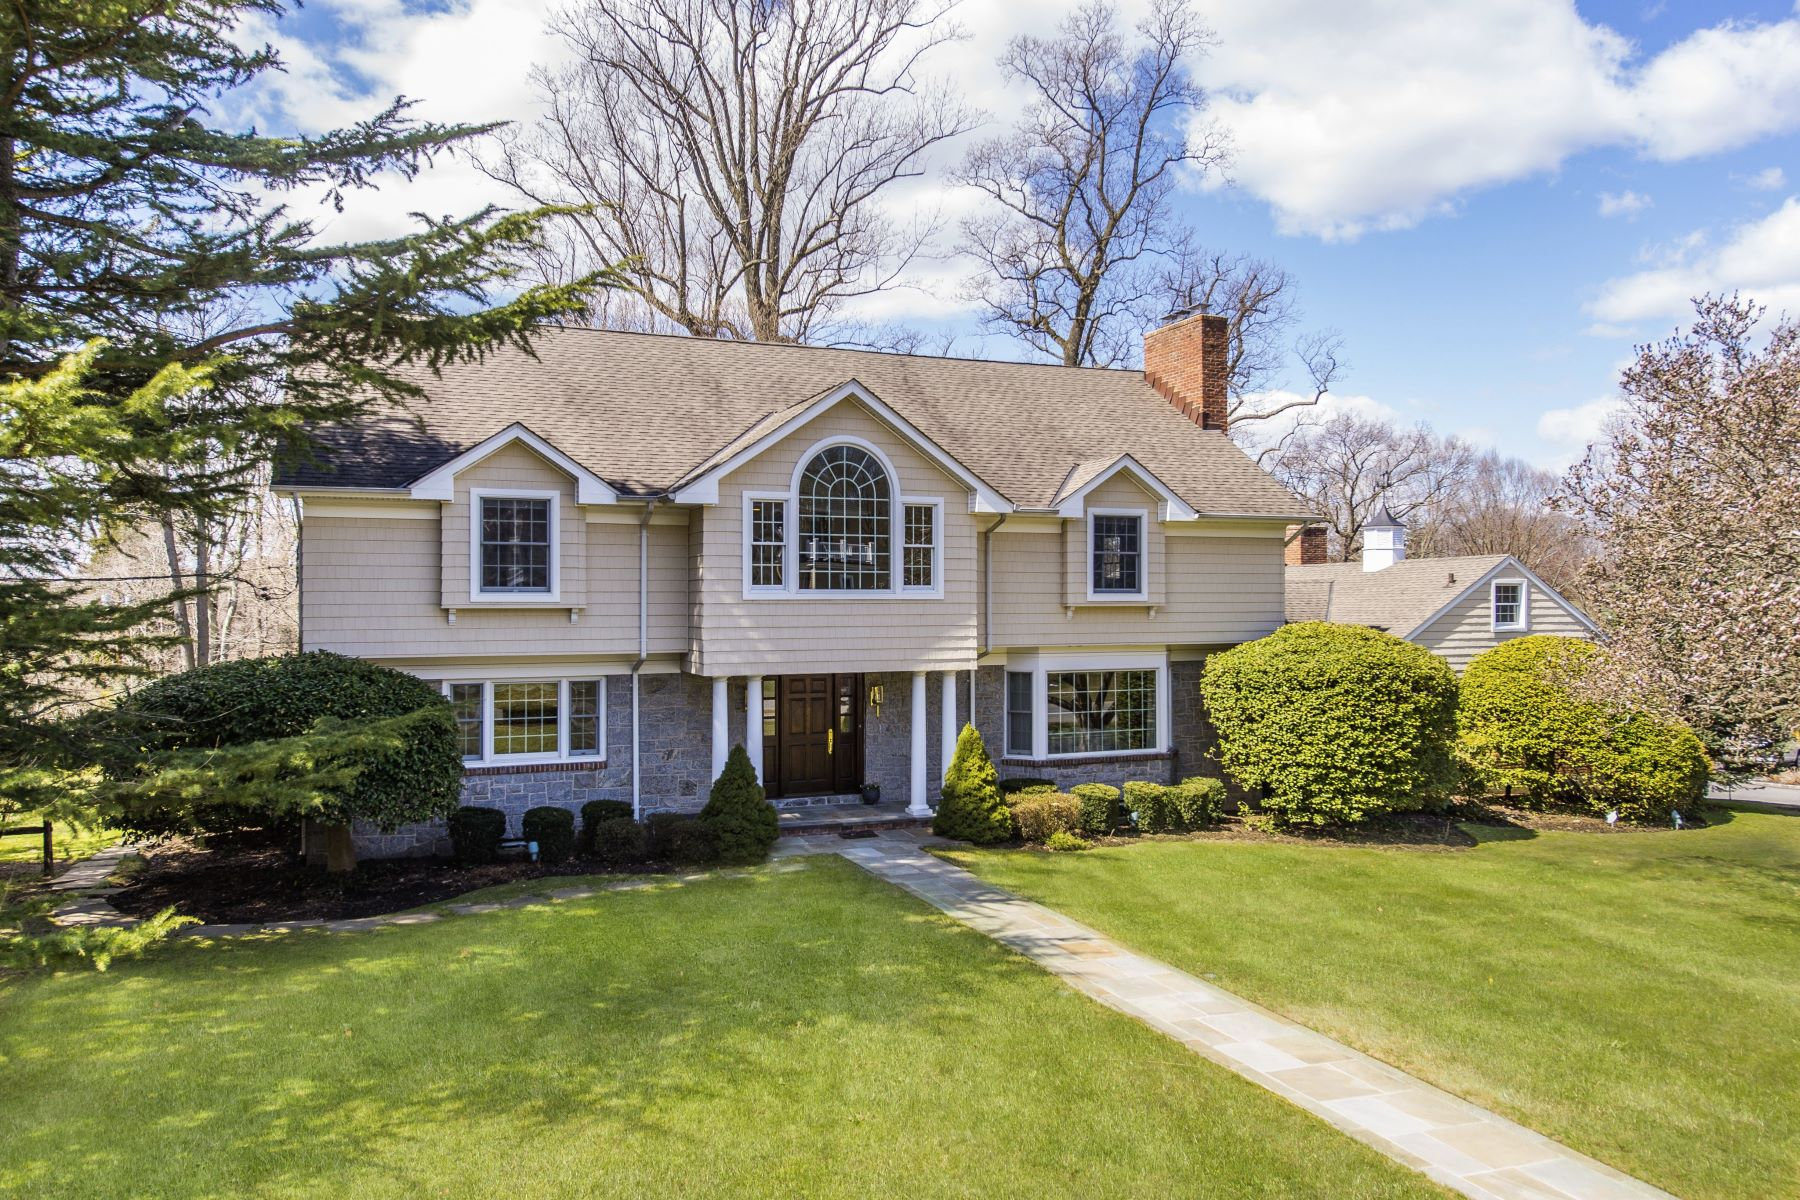 Single Family Home for Active at 90 Gristmill Lane , Manhasset, NY 11030 90 Gristmill Lane Manhasset, New York 11030 United States